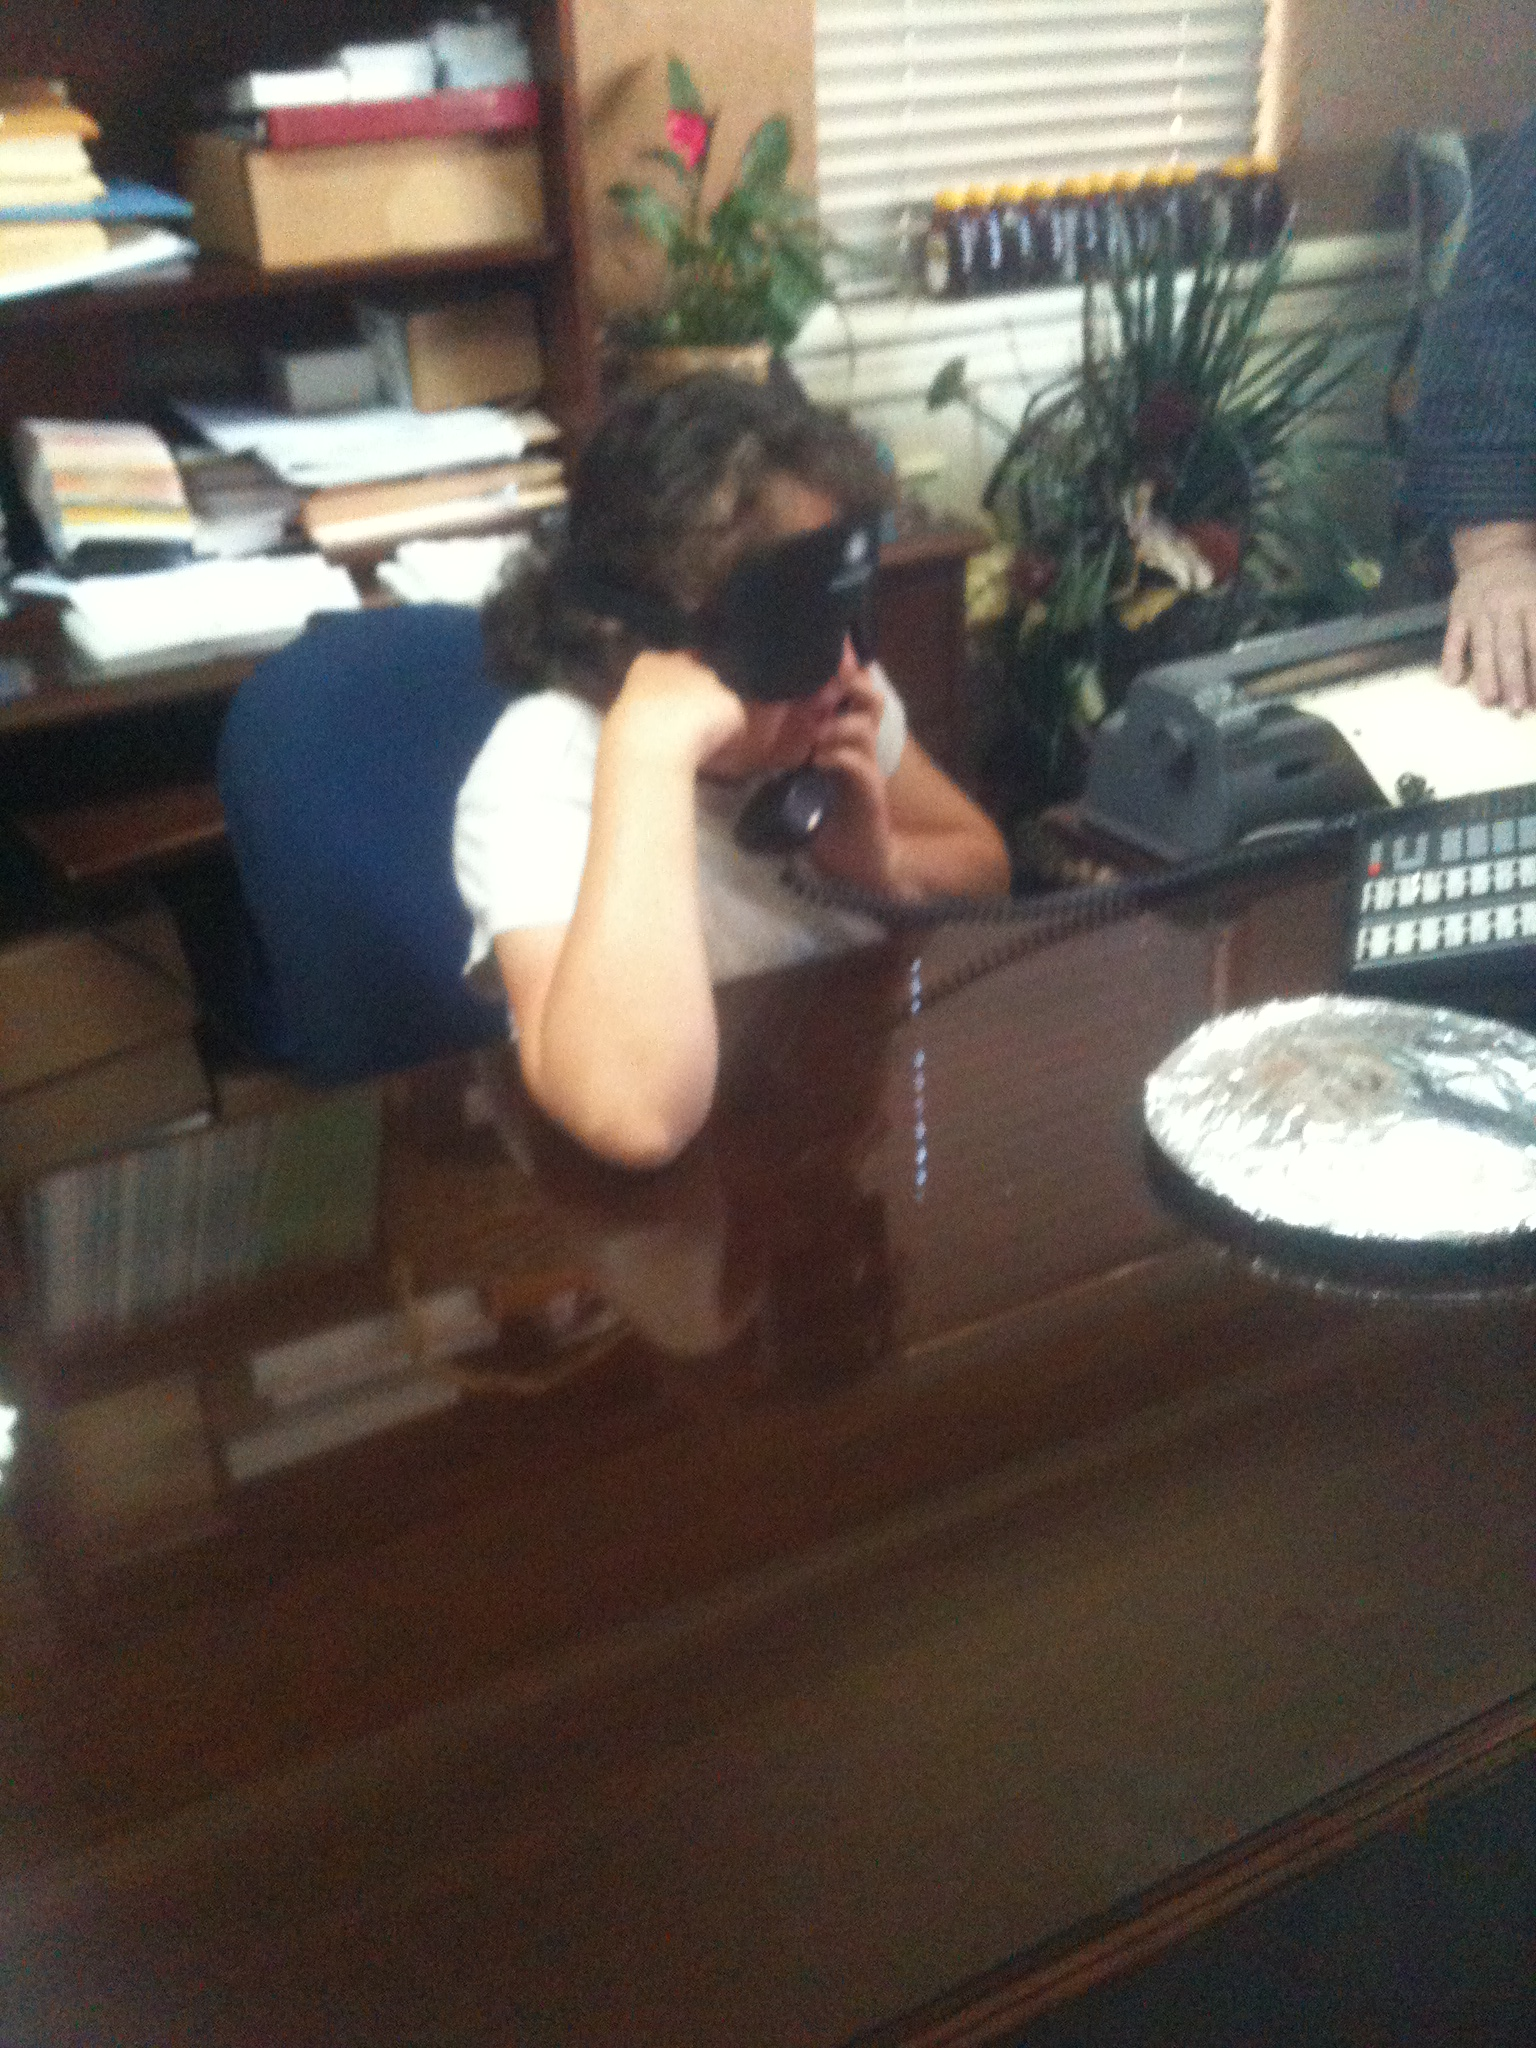 Nicole answers phones as part of her summer work experience.